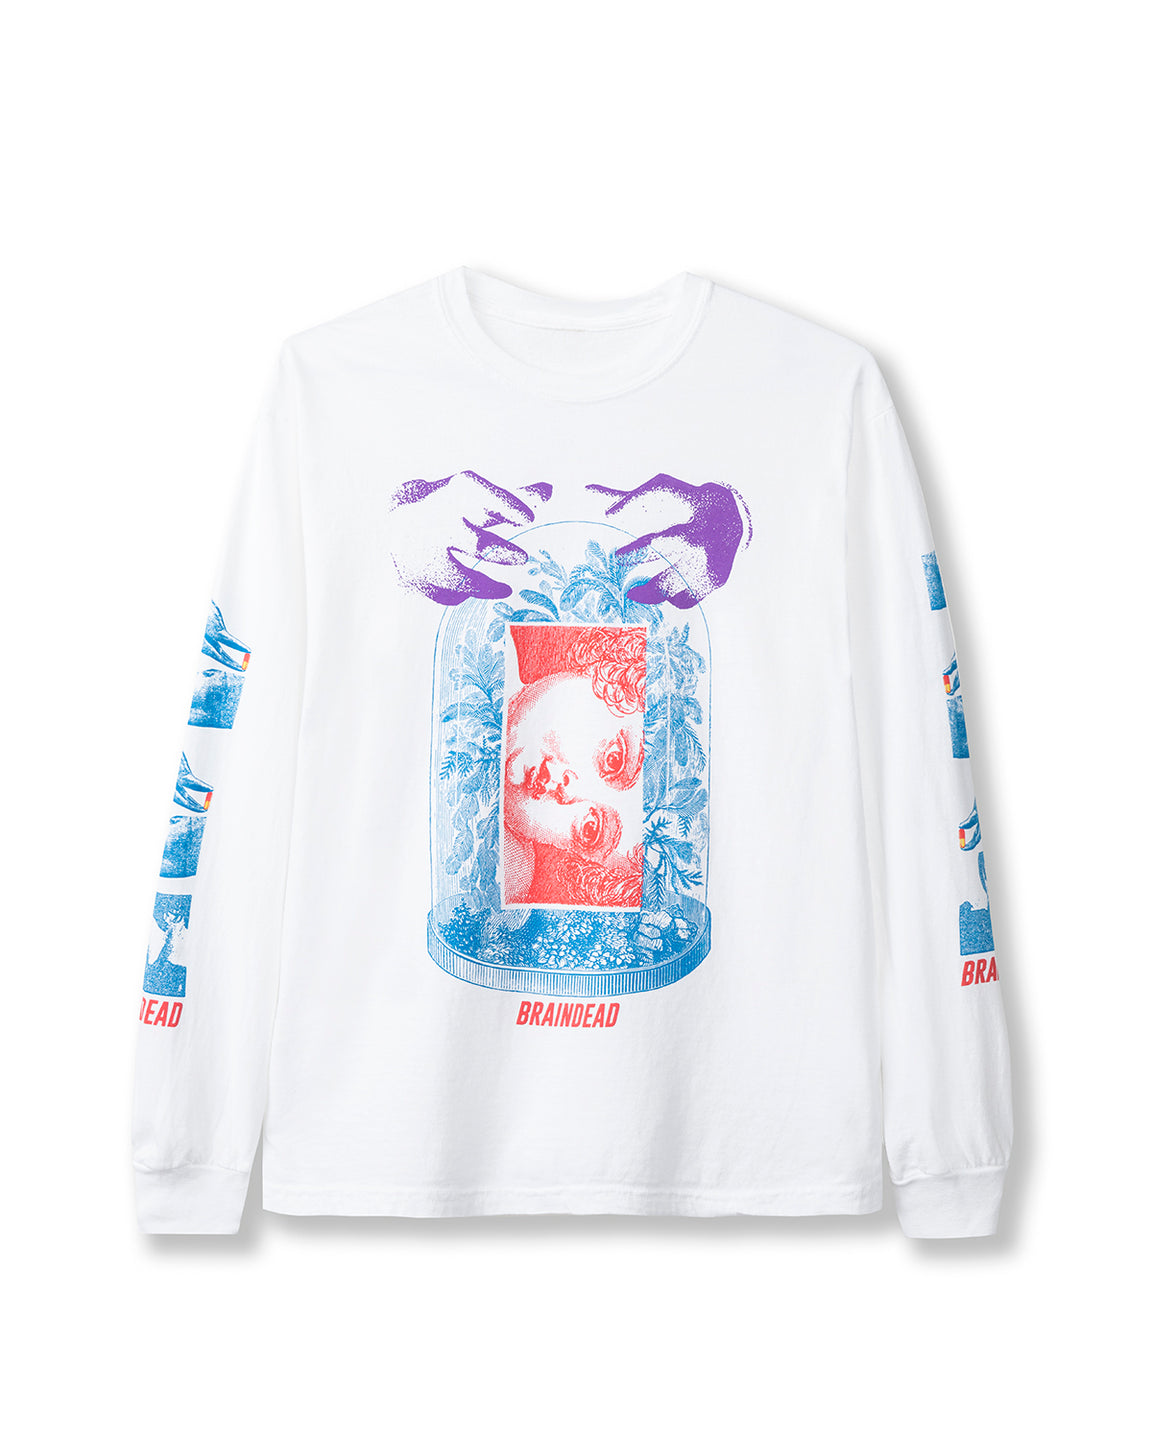 Ways of Knowing Long Sleeve - White - Brain Dead